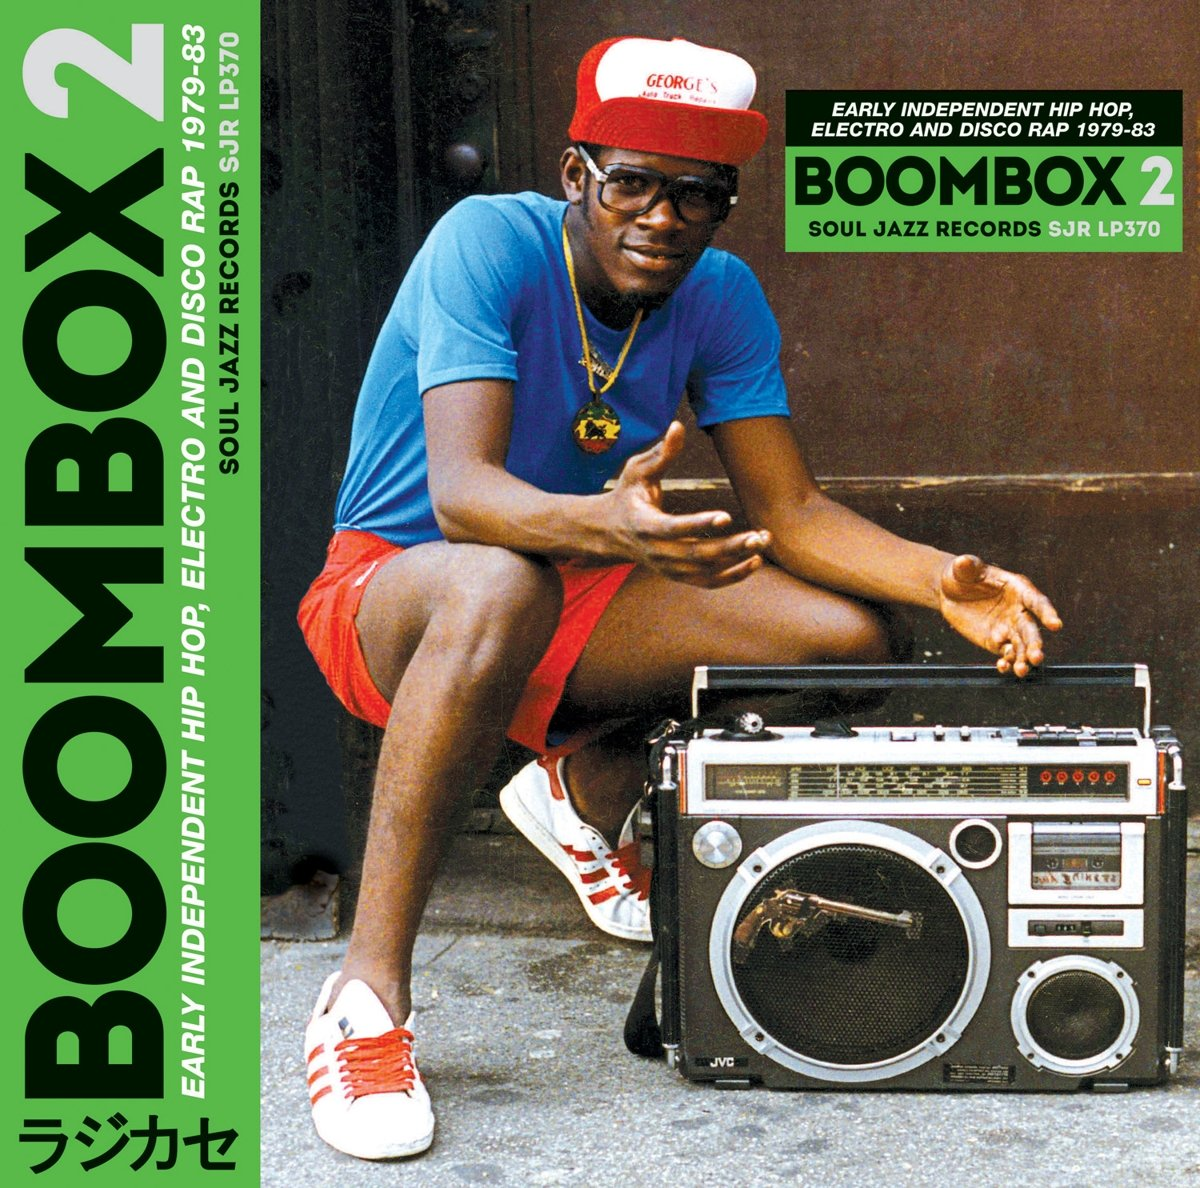 VA - Boombox 2 Early Independent Hip Hop Electro and Disco Rap 1979 - (SJR CD370) - 2CD - FLAC - 2017 - WRE Download